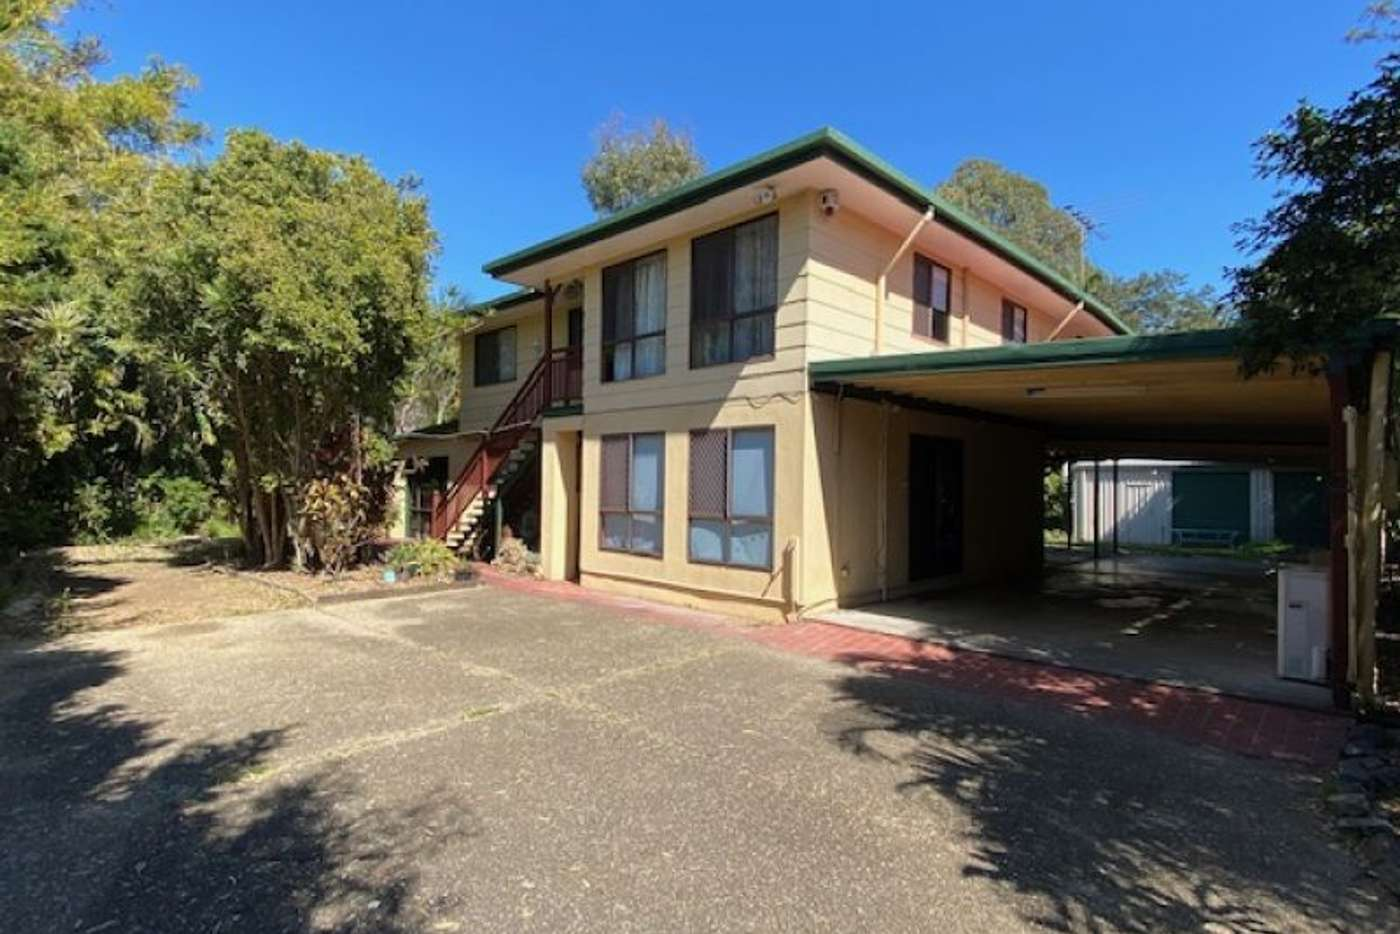 Main view of Homely house listing, 33 Macfarlan Street, Birkdale QLD 4159